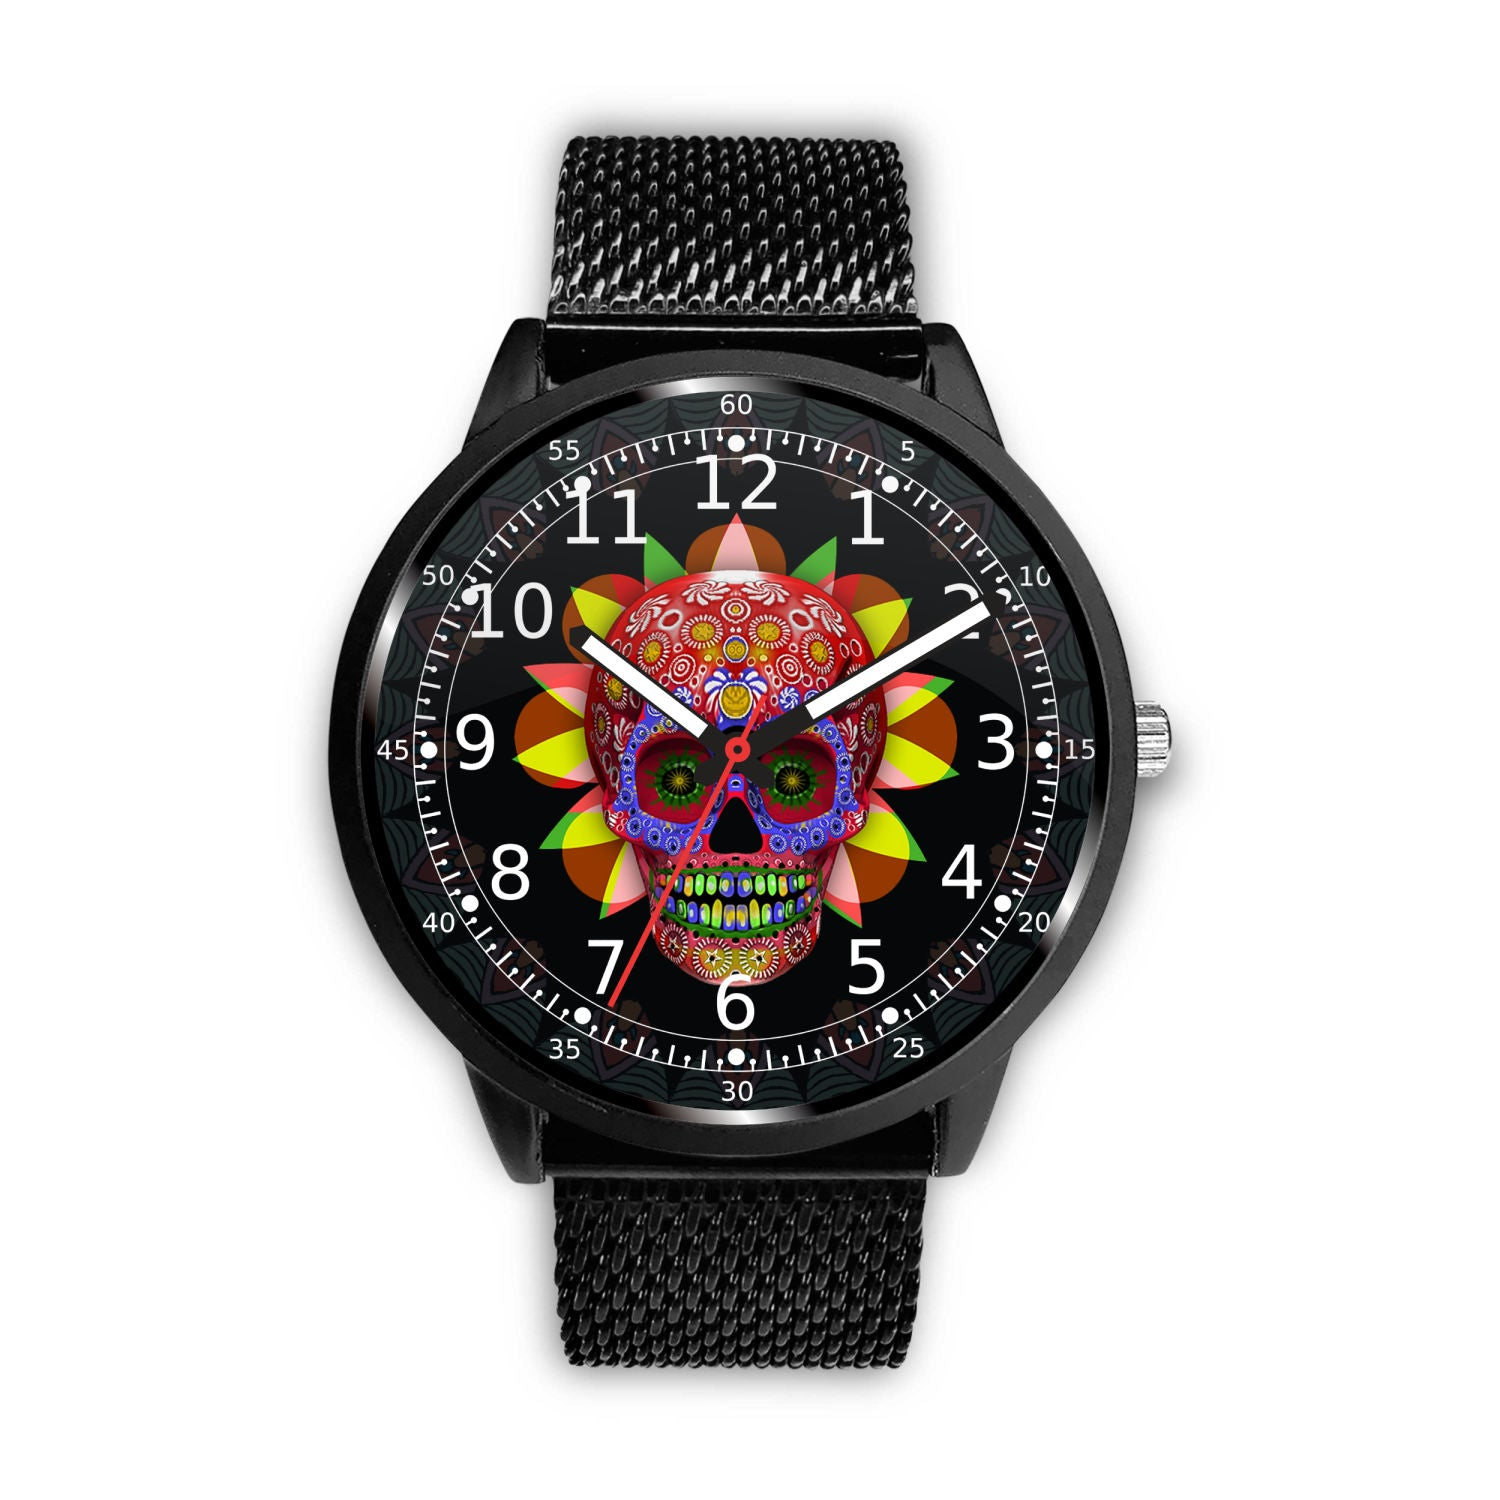 3D Skull Watch - Stainless steel back with leather/ stainless steel band 002 - designfullprint